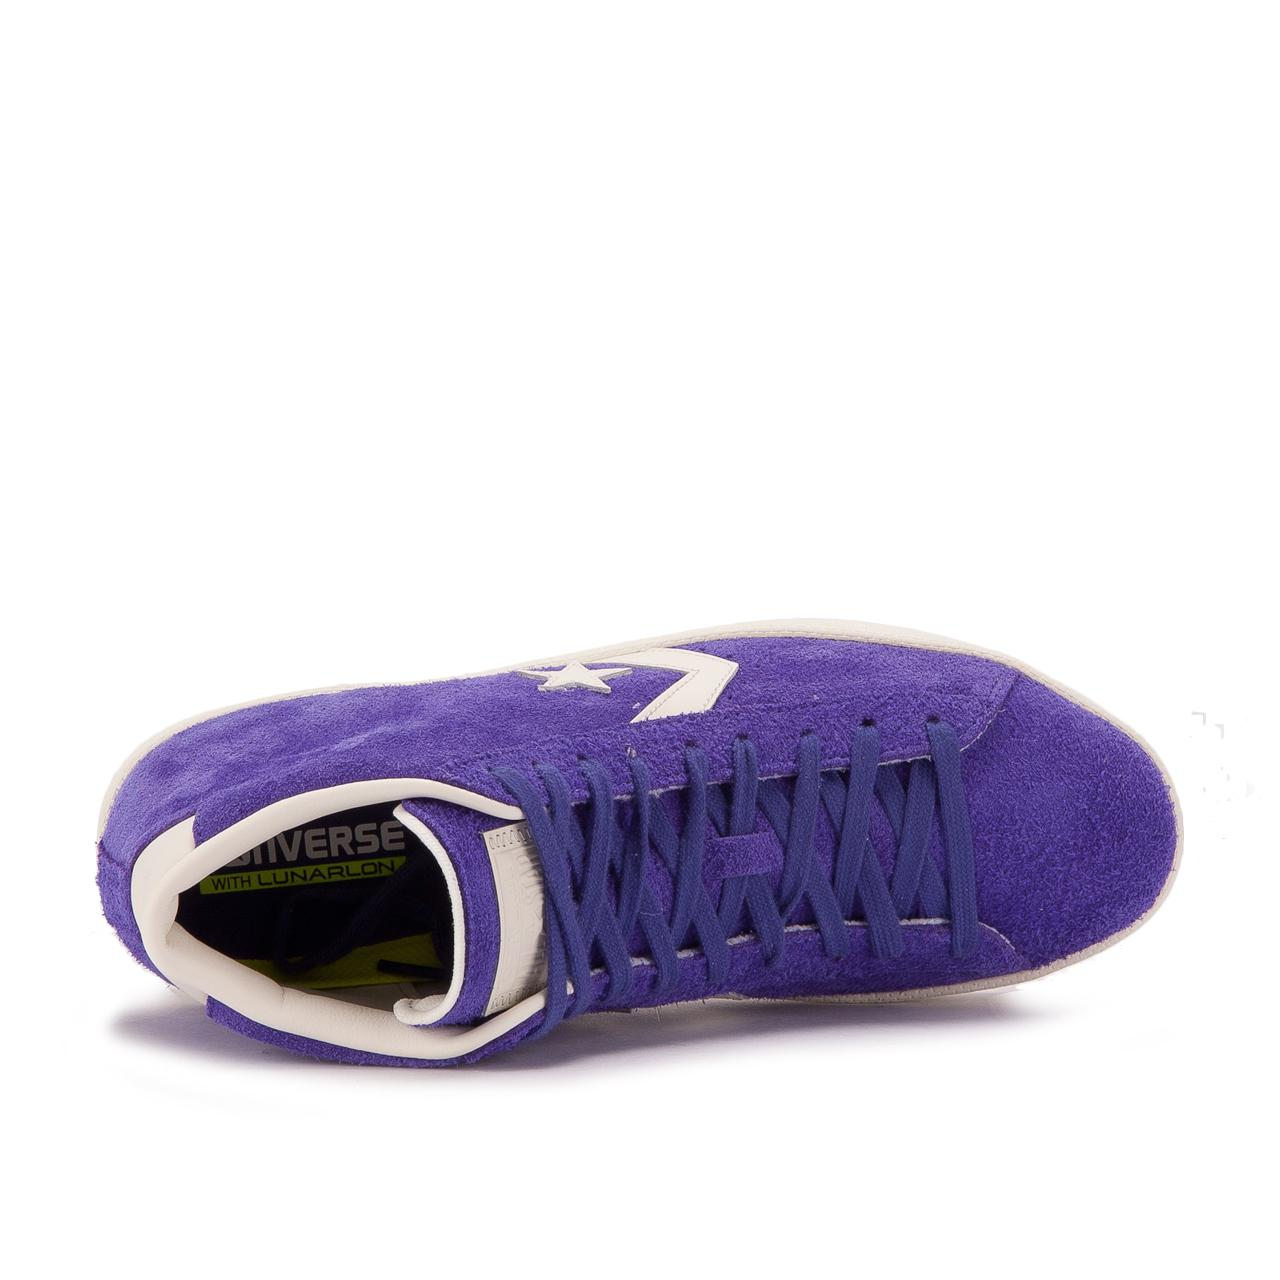 b764b846a581 Converse - Purple Cons Pro Leather 76 Mid